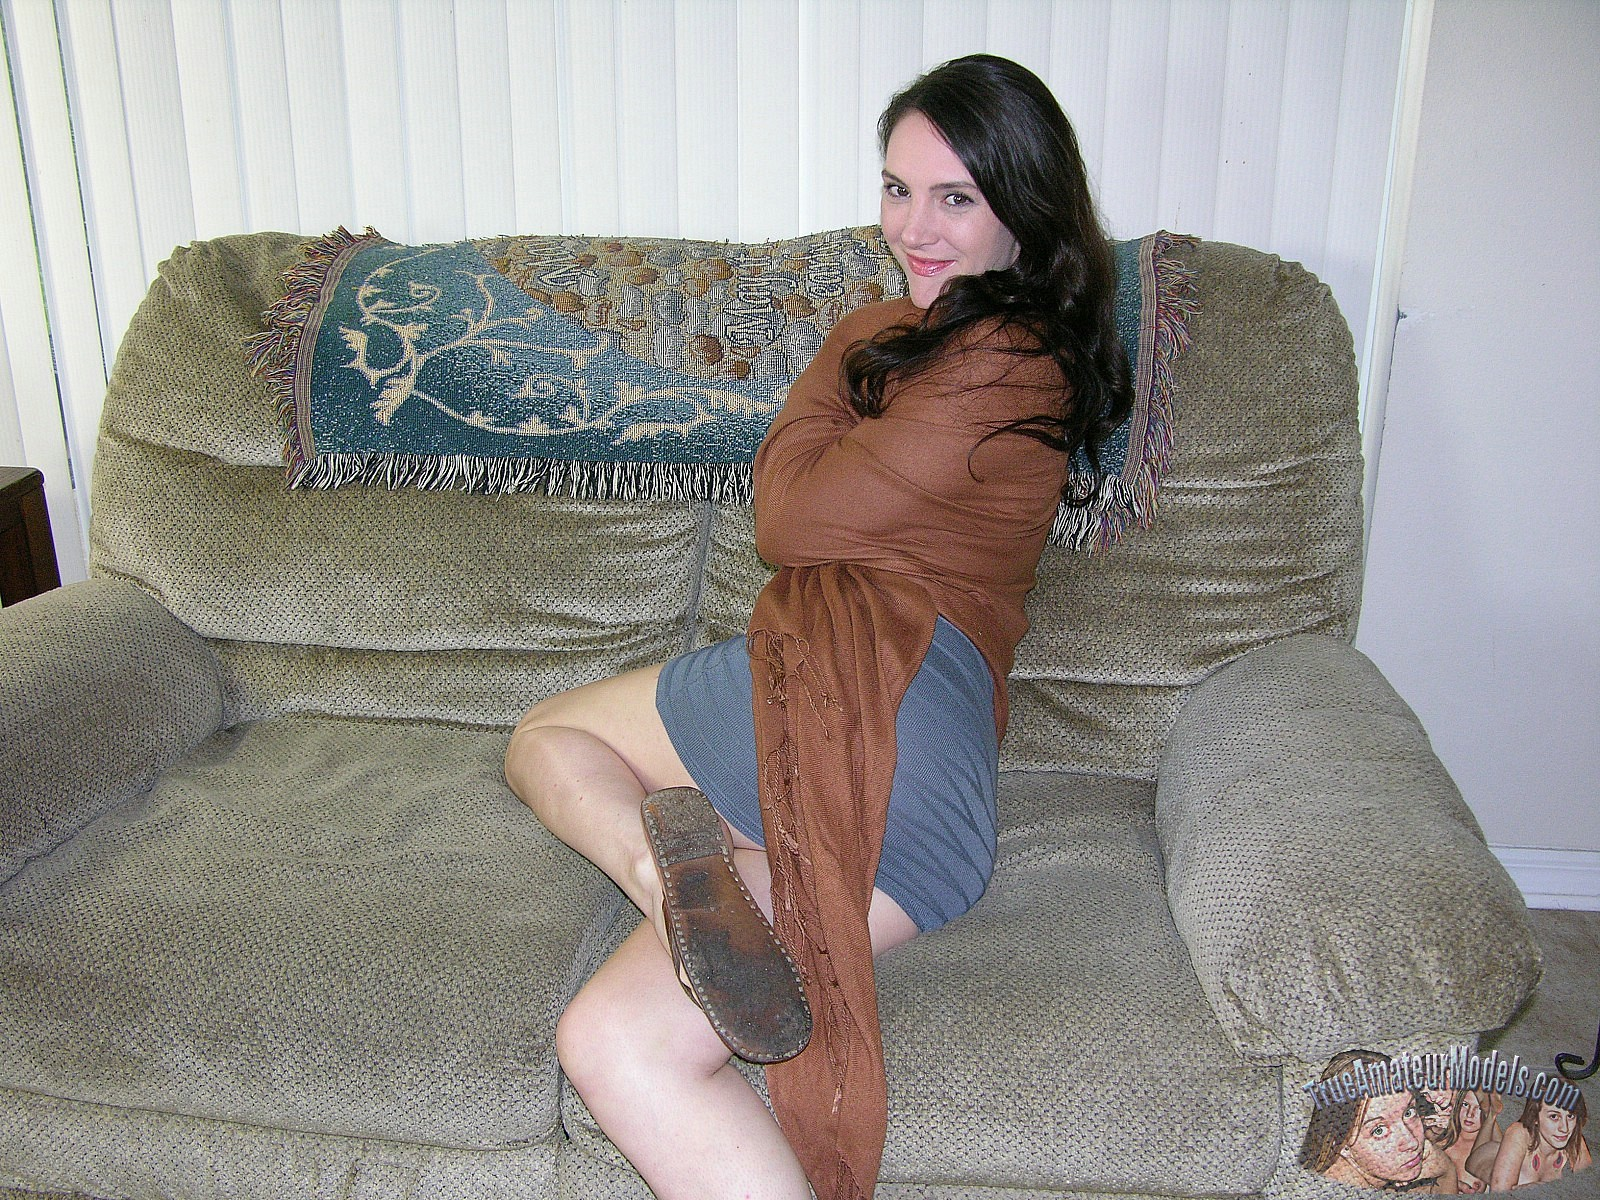 Amateur brunette milf models nude and spreads apart her ass - charlotte d. from